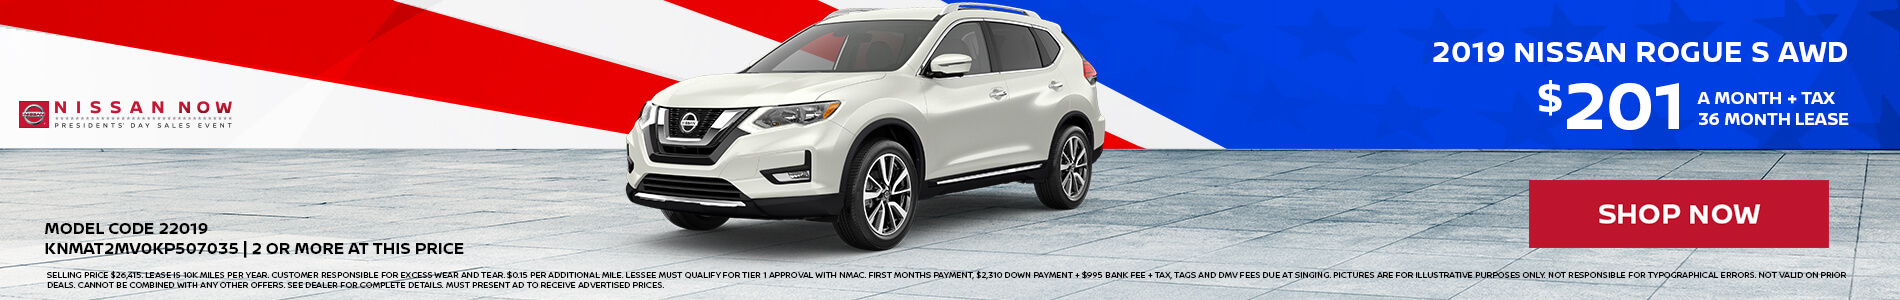 Nissan Rogue $201 Lease